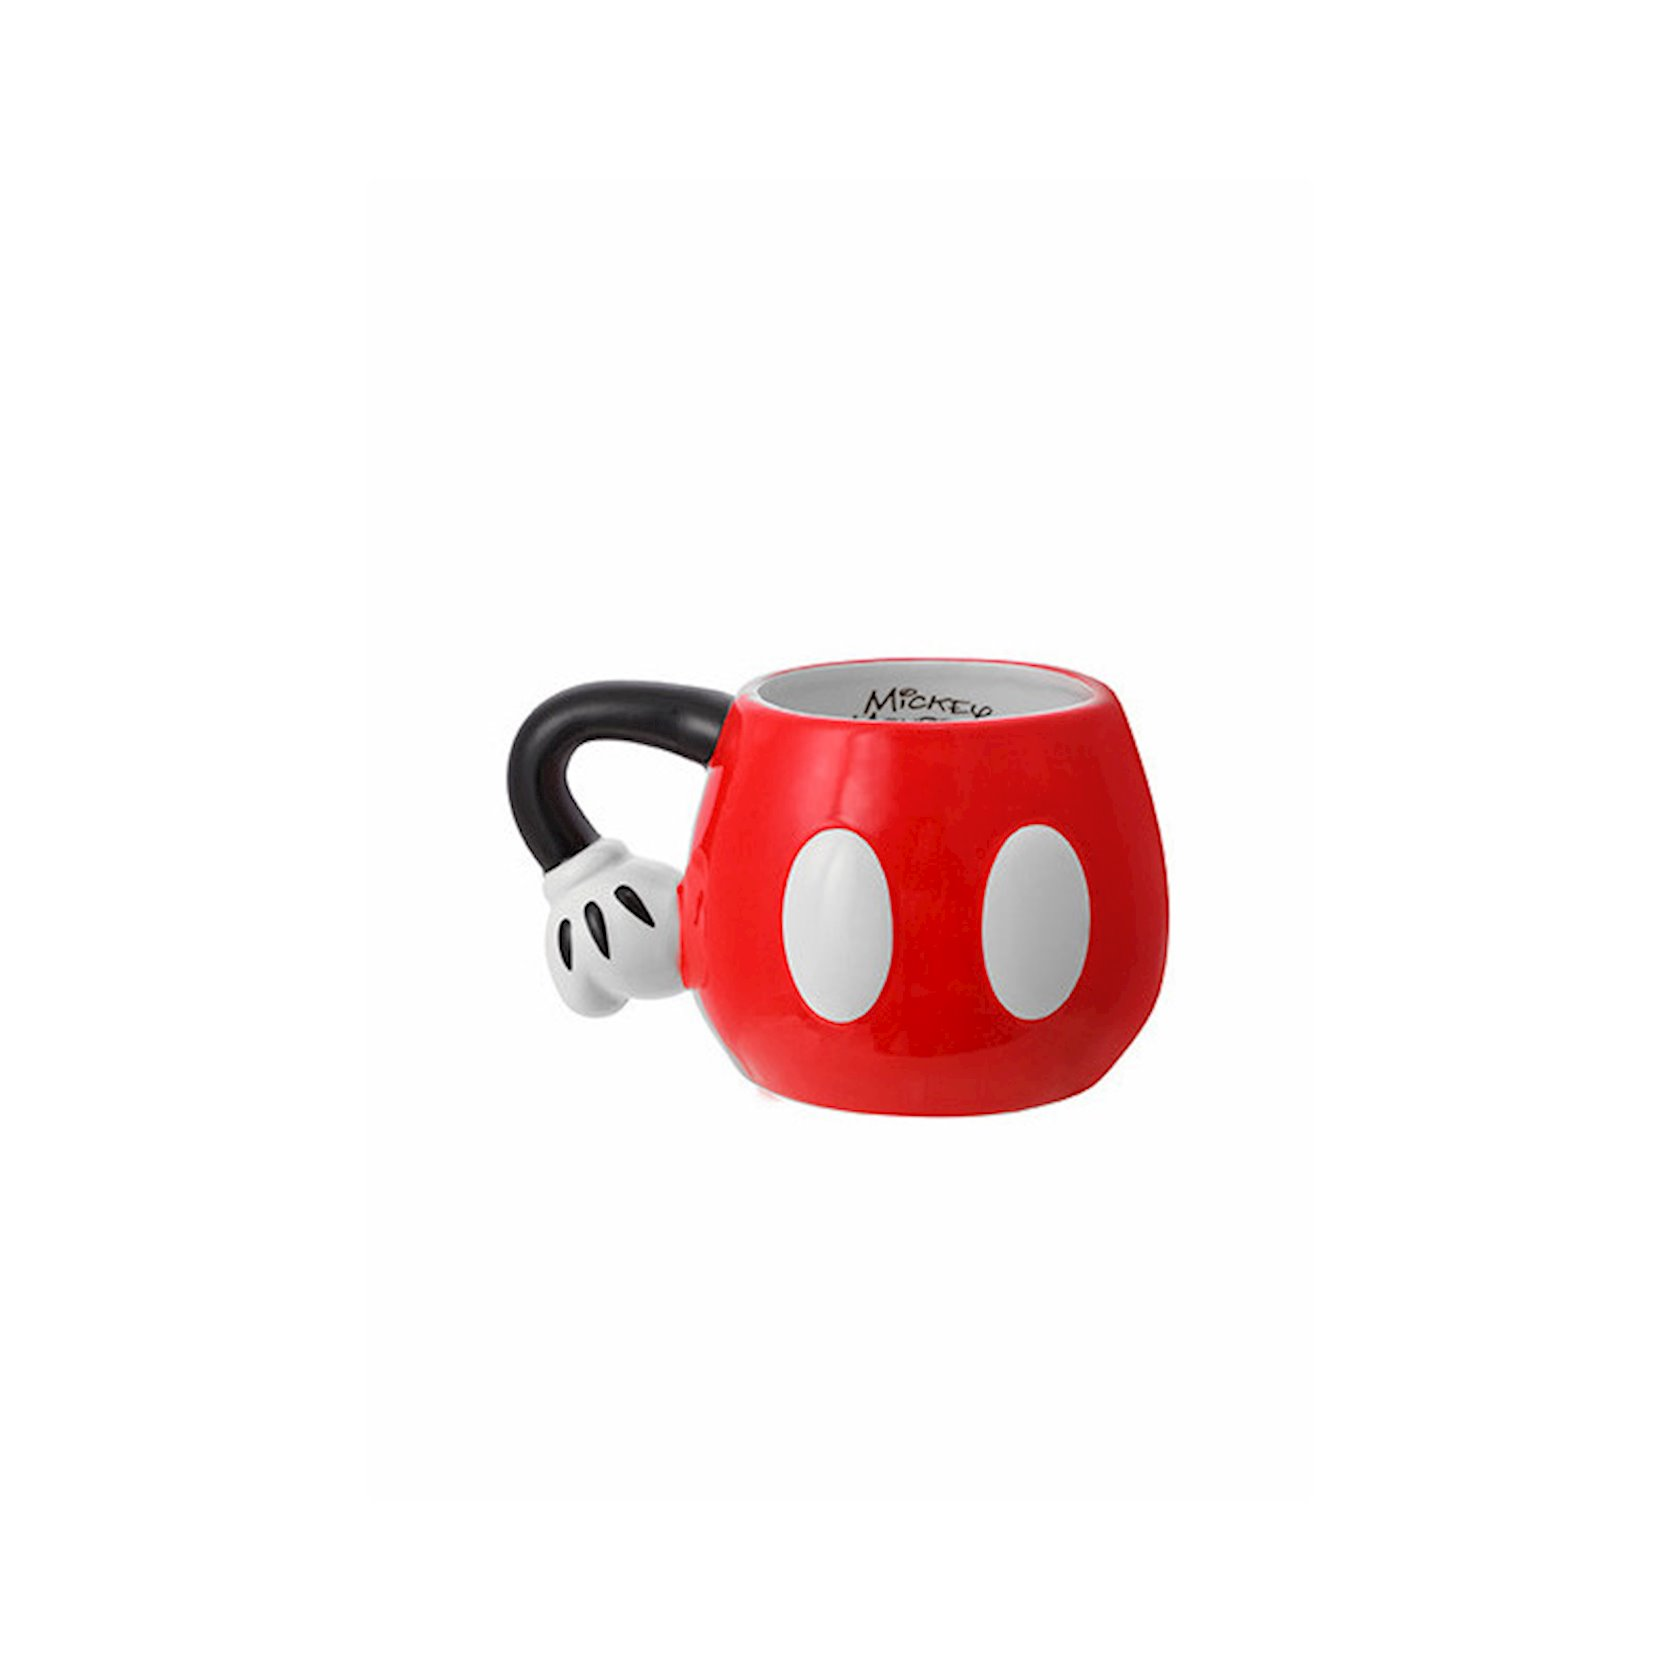 Fincan Miniso Mickey Mouse Collection Pot-bellied Mug, 568 ml